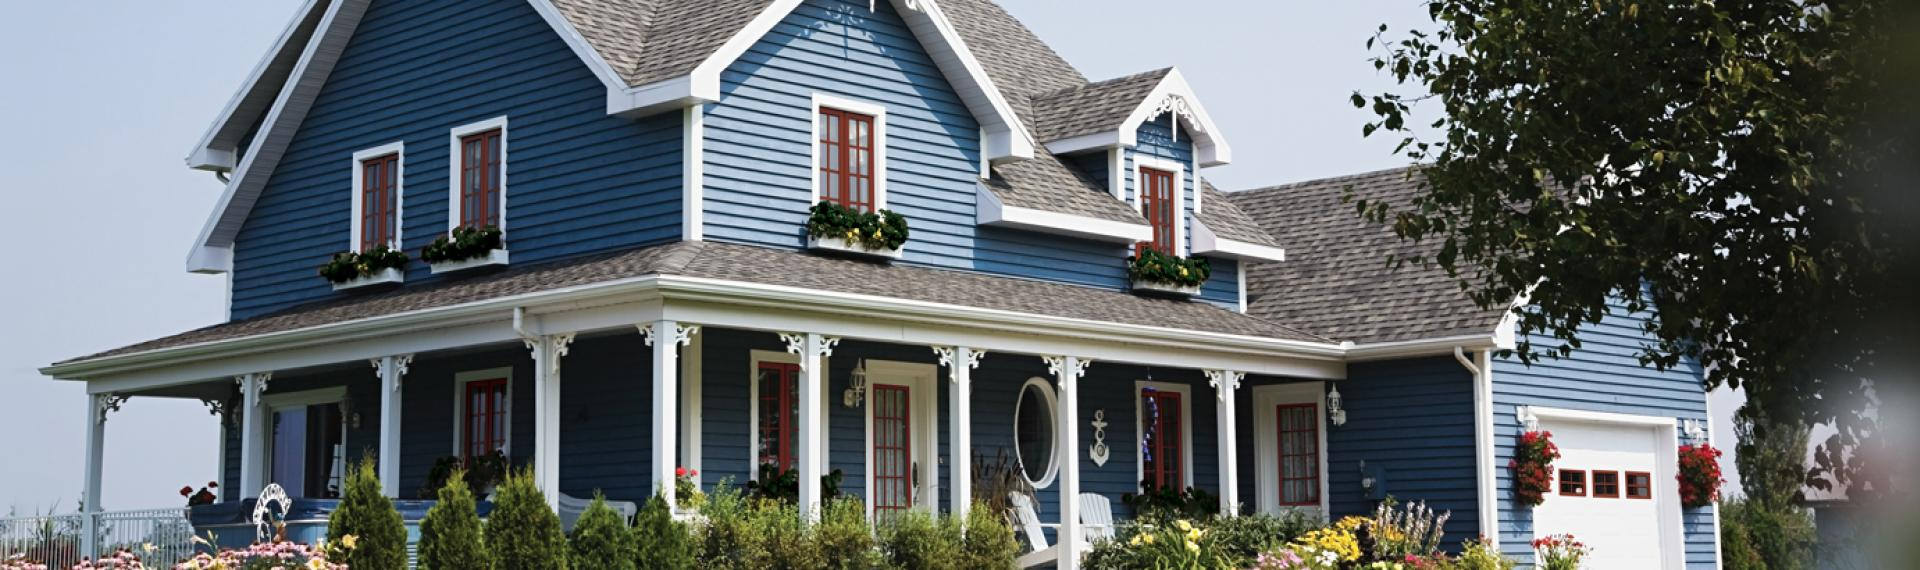 Cape code architectural style considerations milgard for Cape cod architects